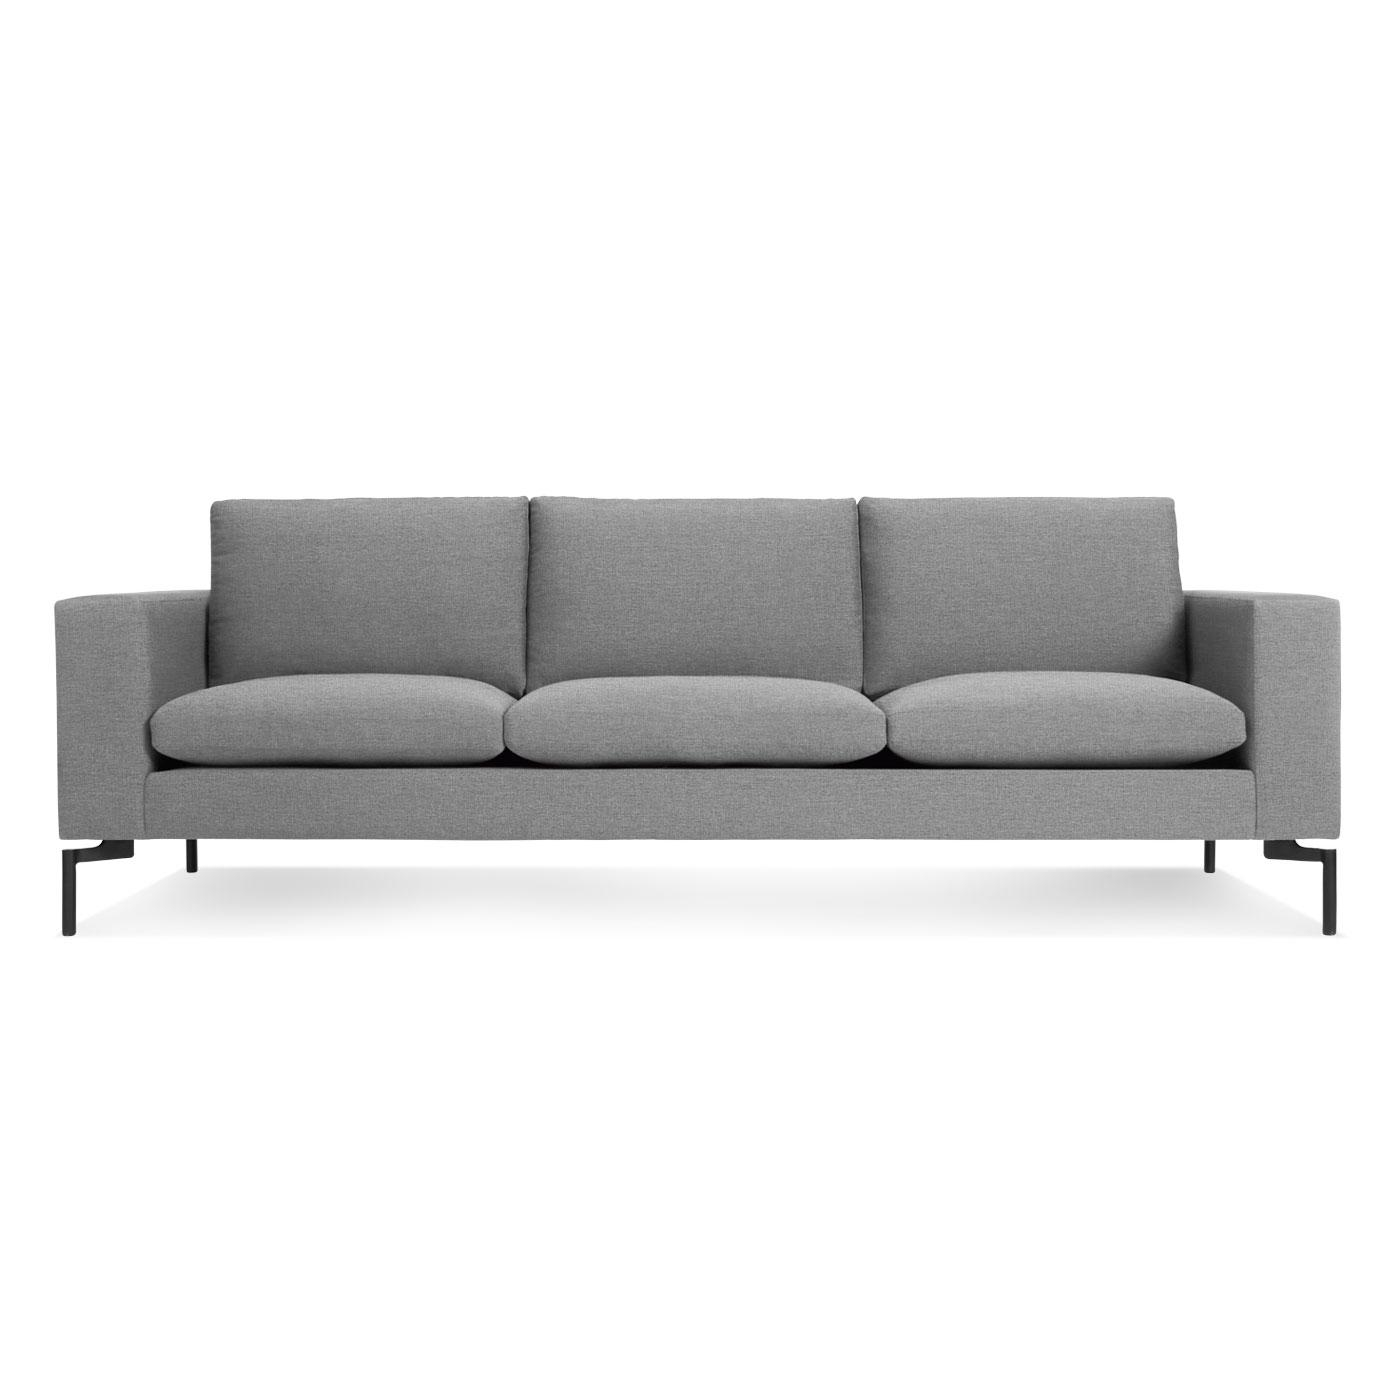 "New Standard 92"" Sofa – Contemporary Sofas 